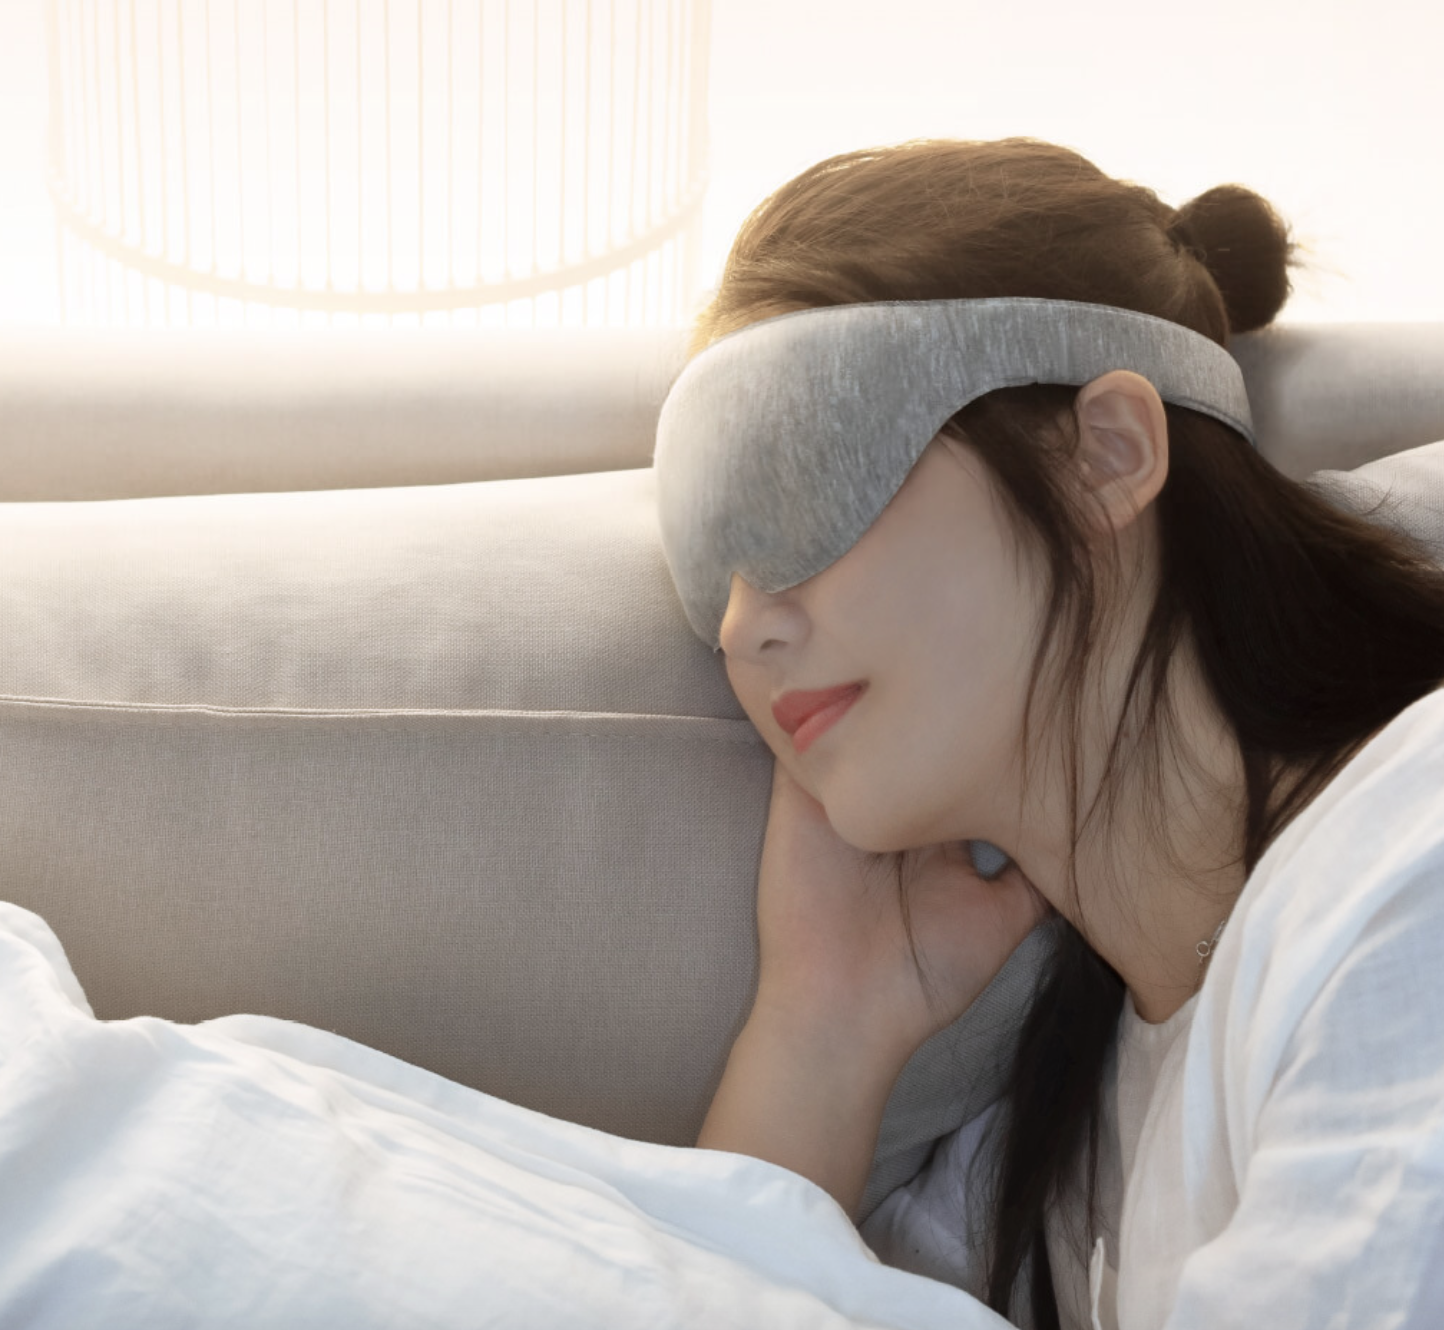 Glasses that provide the eyes a moment of relaxation